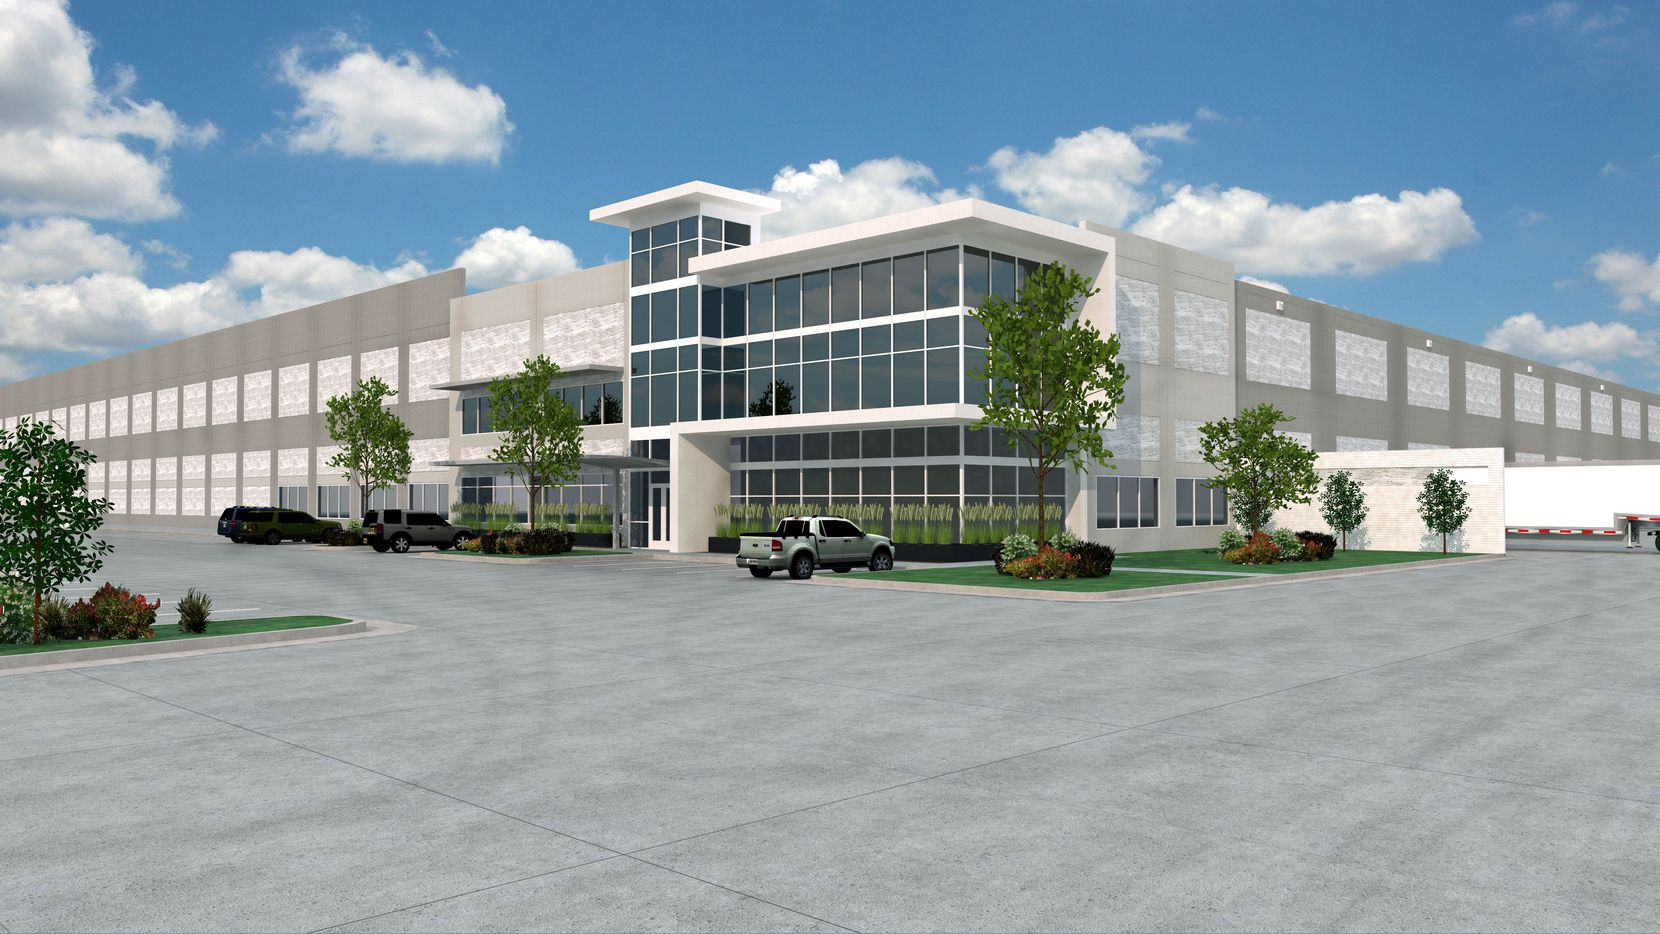 Perot Development will start the first of the DFW Airport buildings in March.